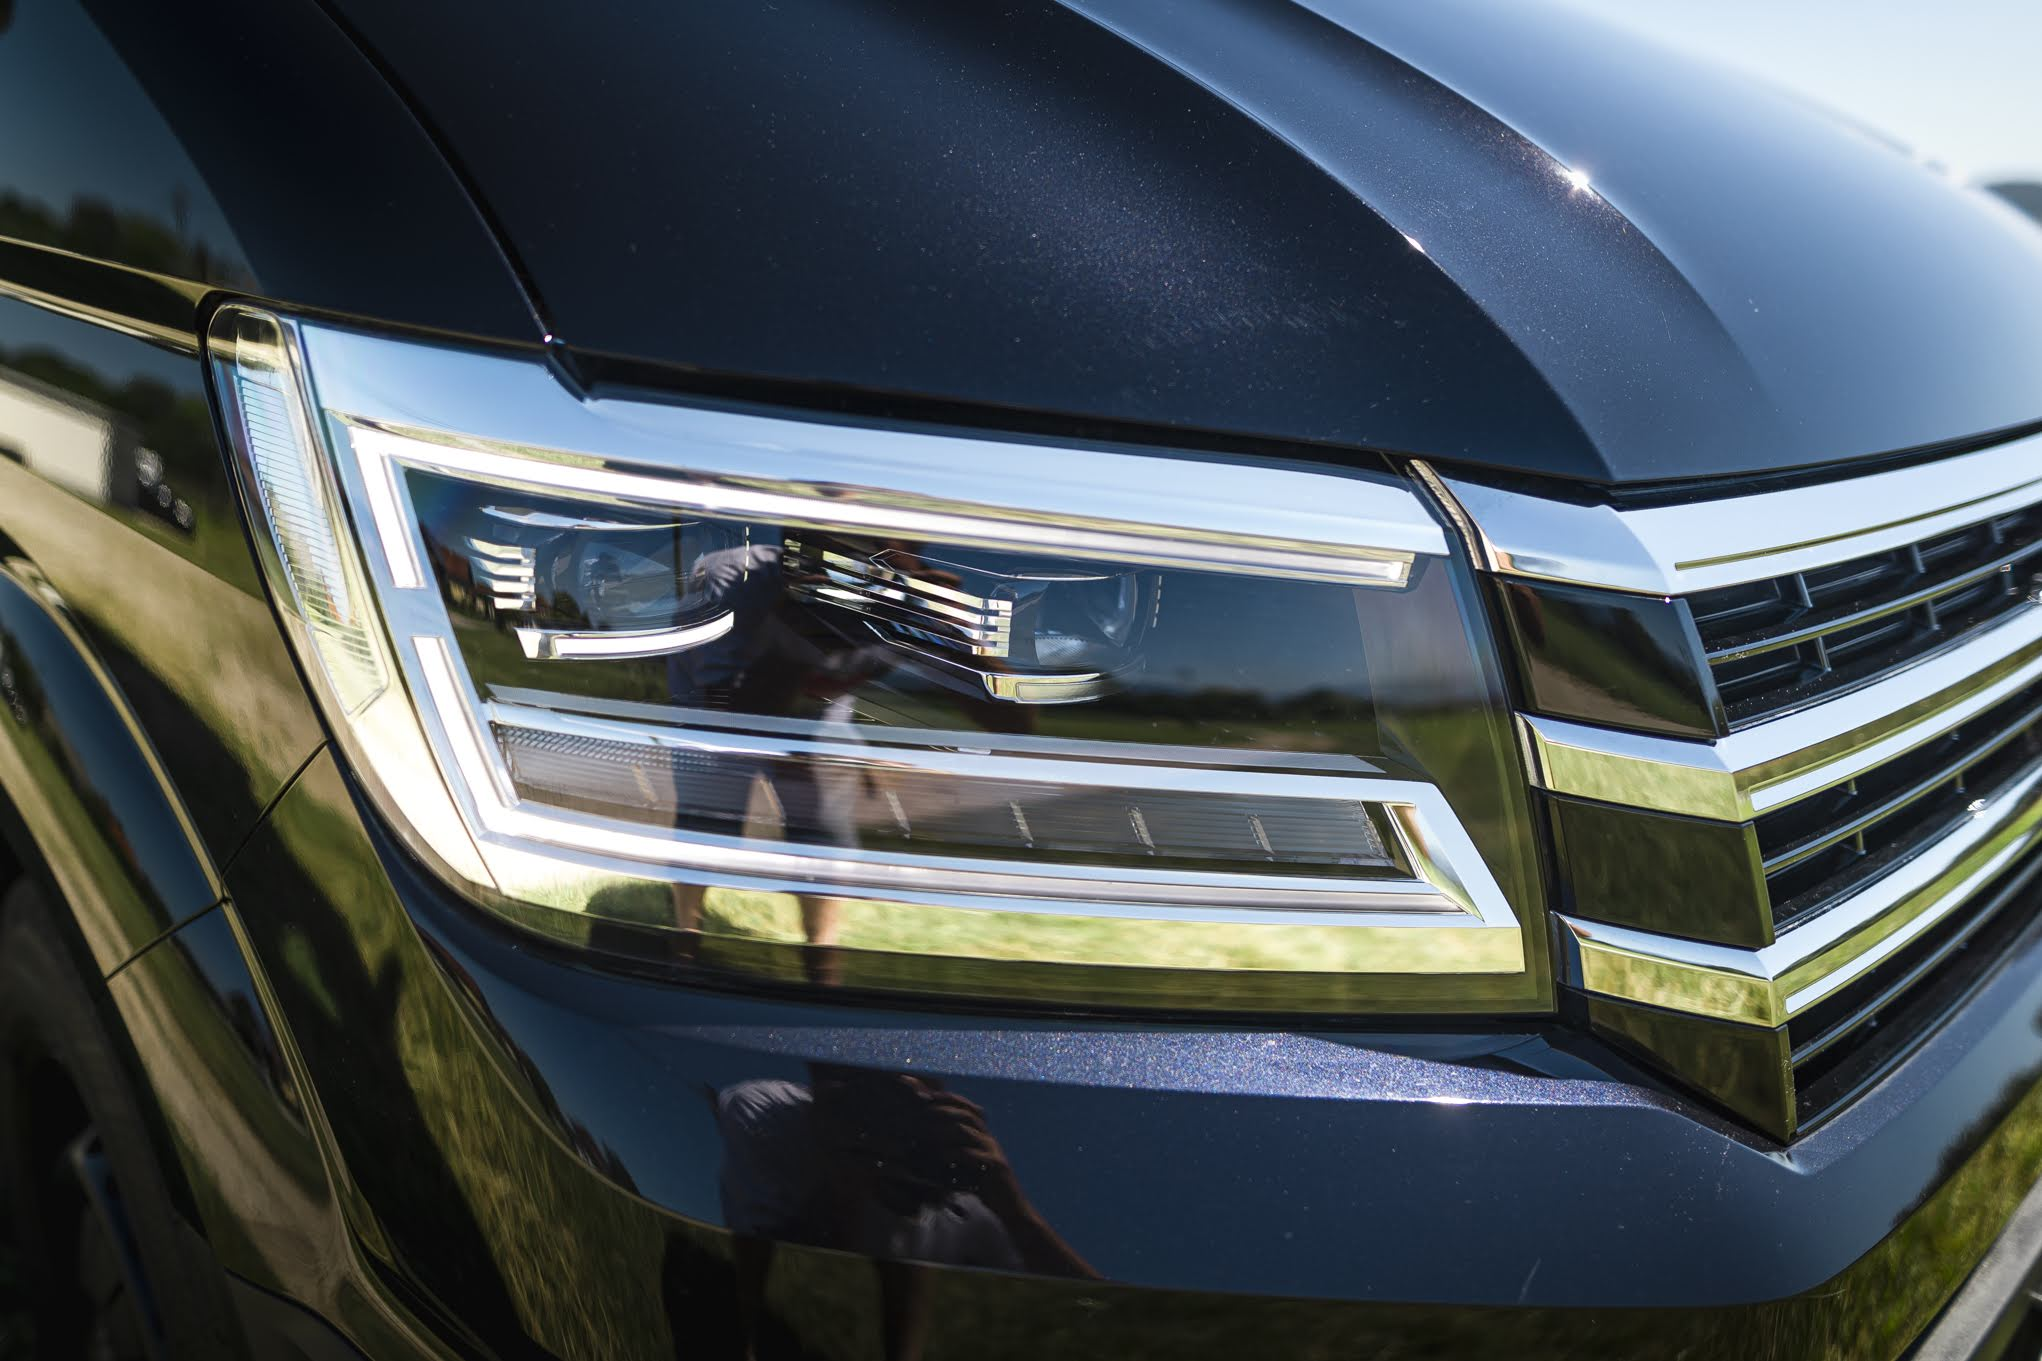 VW Crafter Compact Lichter